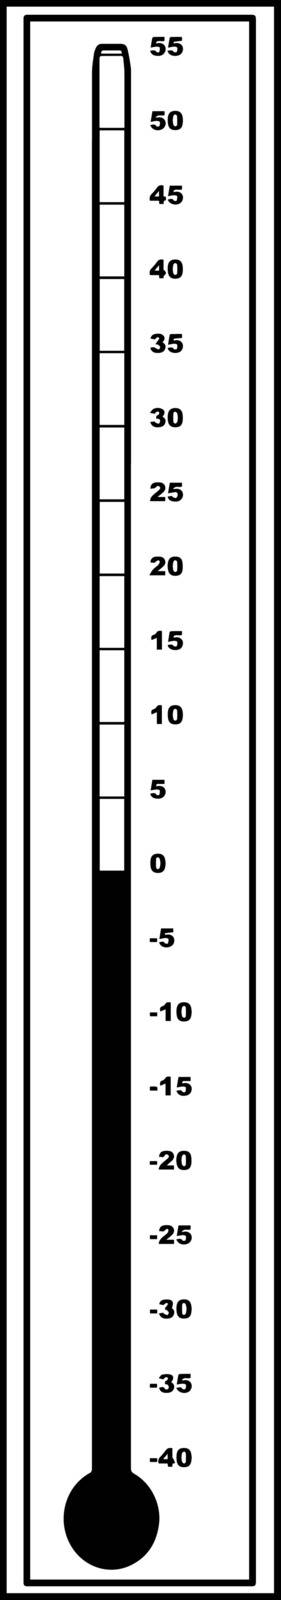 This image is for thermometer which is showing temperature 0 degree Celsius Centigrade, vintage line drawing or engraving illustration.